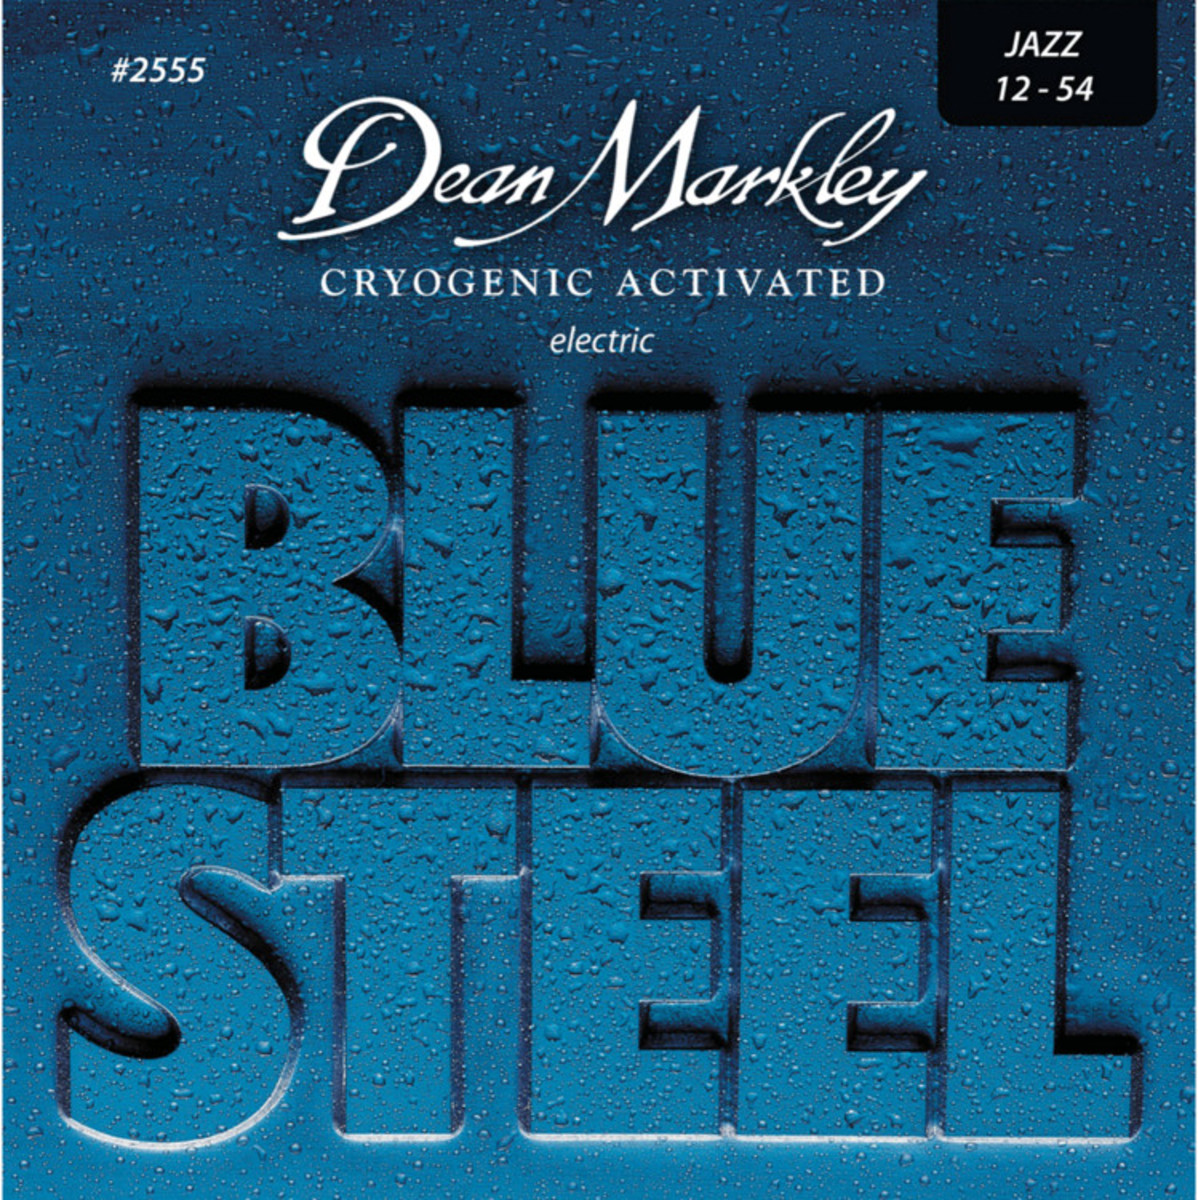 Image of Dean Markley Jazz Blue SteelElectric Guitar Strings 12-54